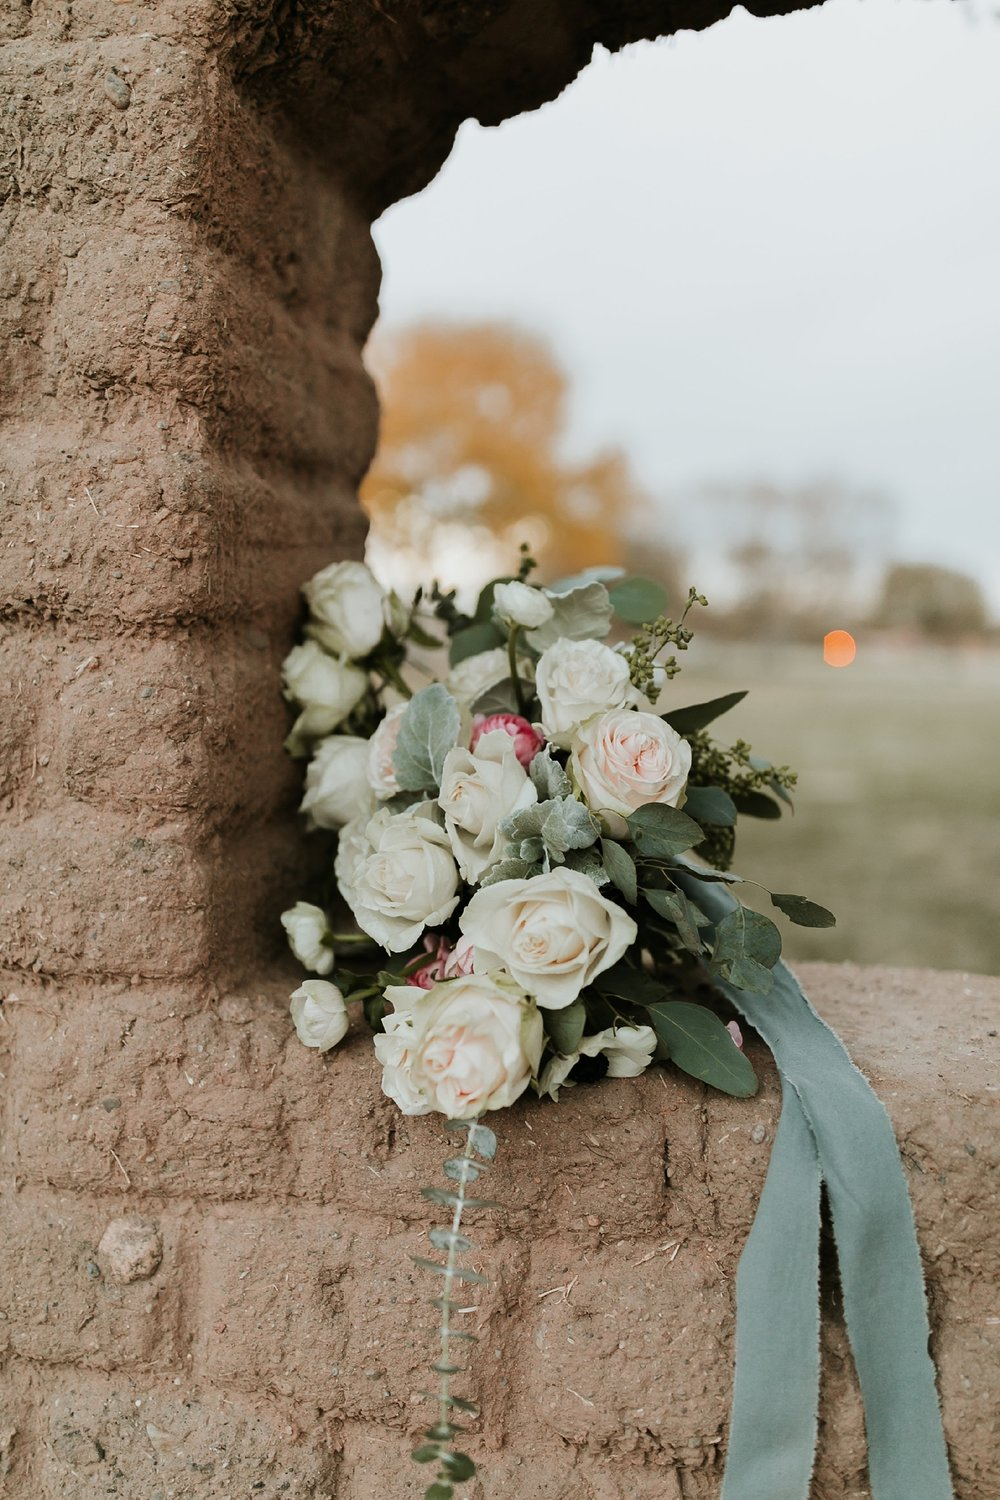 Alicia+lucia+photography+-+albuquerque+wedding+photographer+-+santa+fe+wedding+photography+-+new+mexico+wedding+photographer+-+bridal+shoot+-+styled+bridal+shoot+-+southwest+bride_0023.jpg